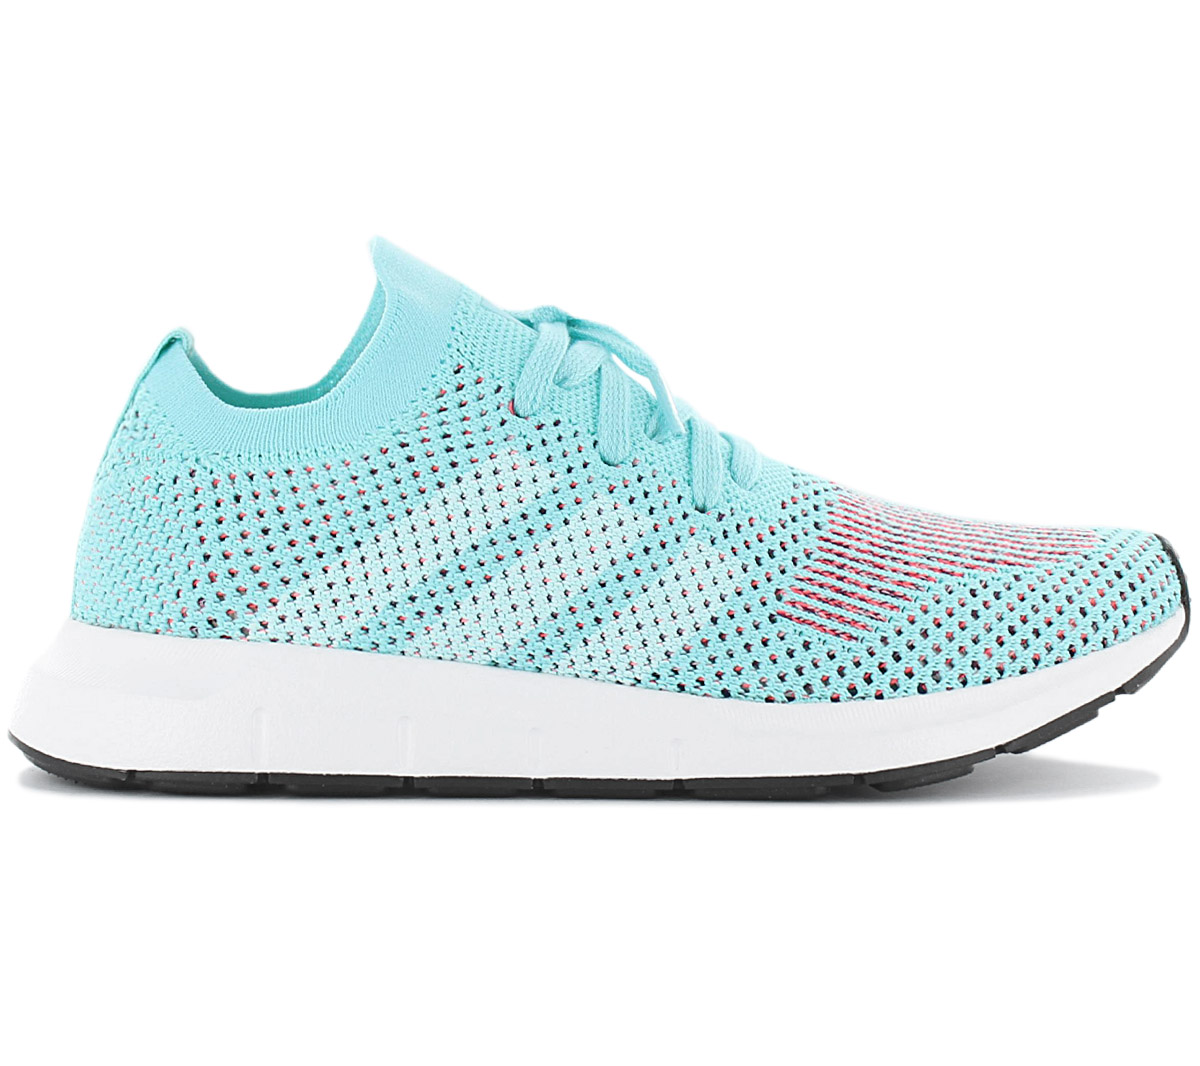 Details about Adidas Originals Swift Run Pk W Primeknit Women's Sneaker  CQ2034 Turquoise New